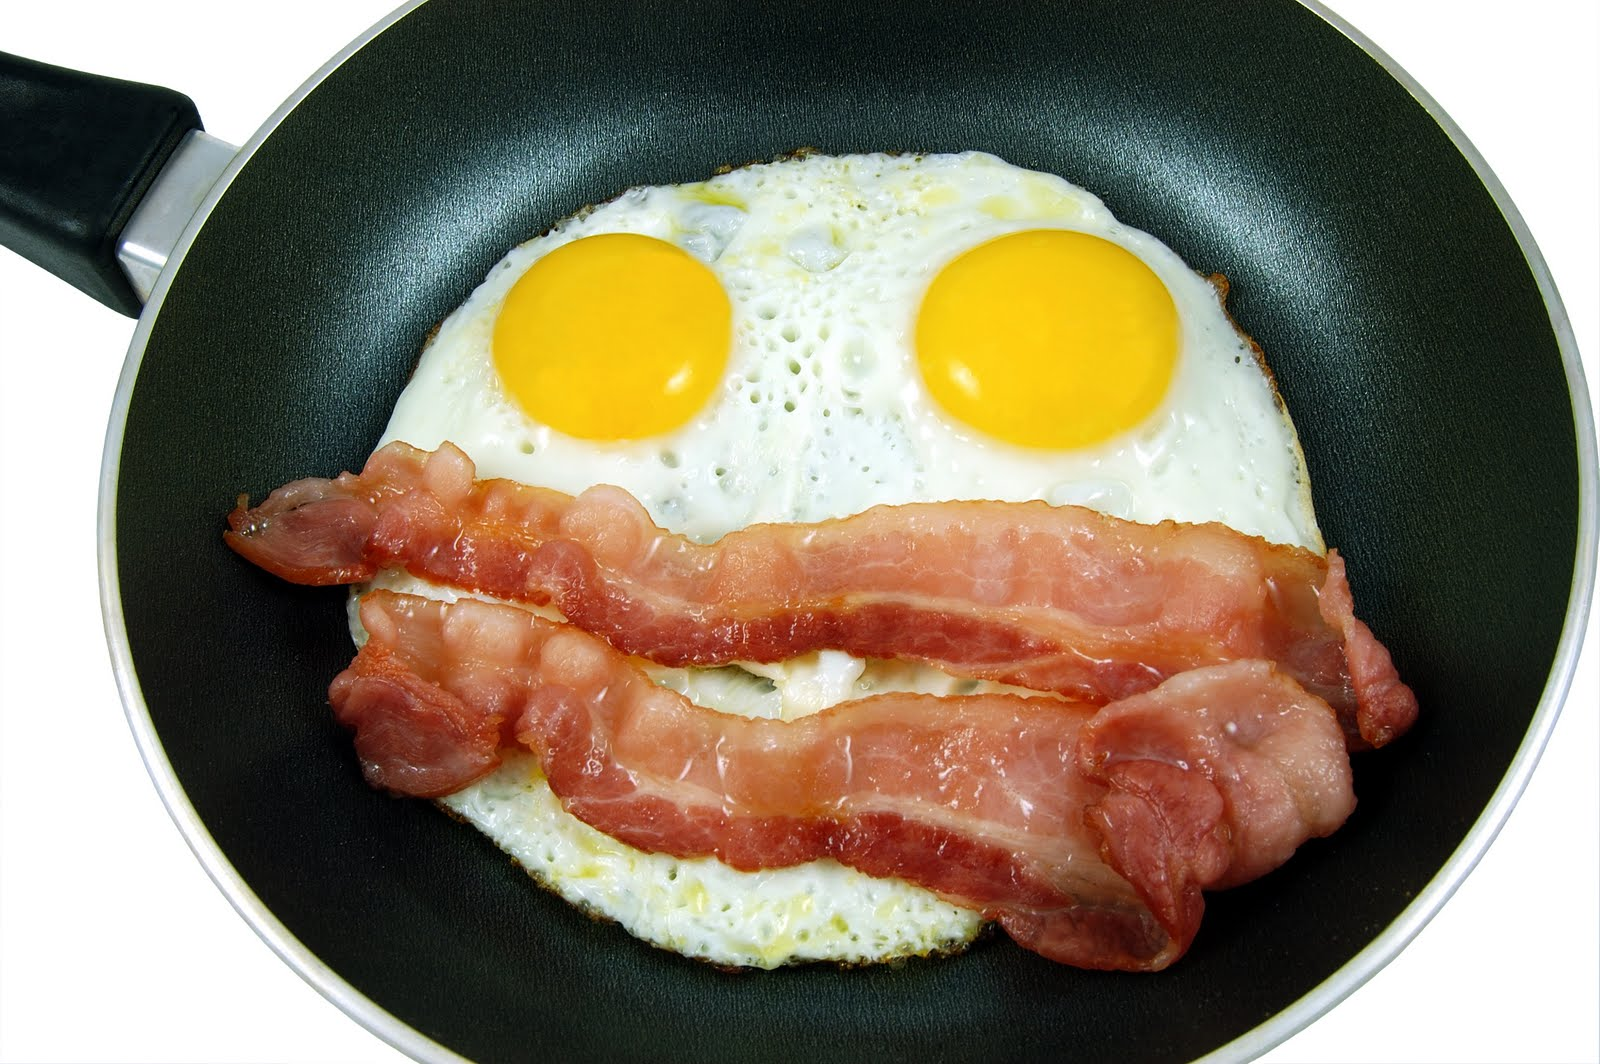 http://1.bp.blogspot.com/_rz9dzrTeX38/TGP2IilhuYI/AAAAAAAABCs/s0x5NprjxhM/s1600/bacon-and-eggs.jpg